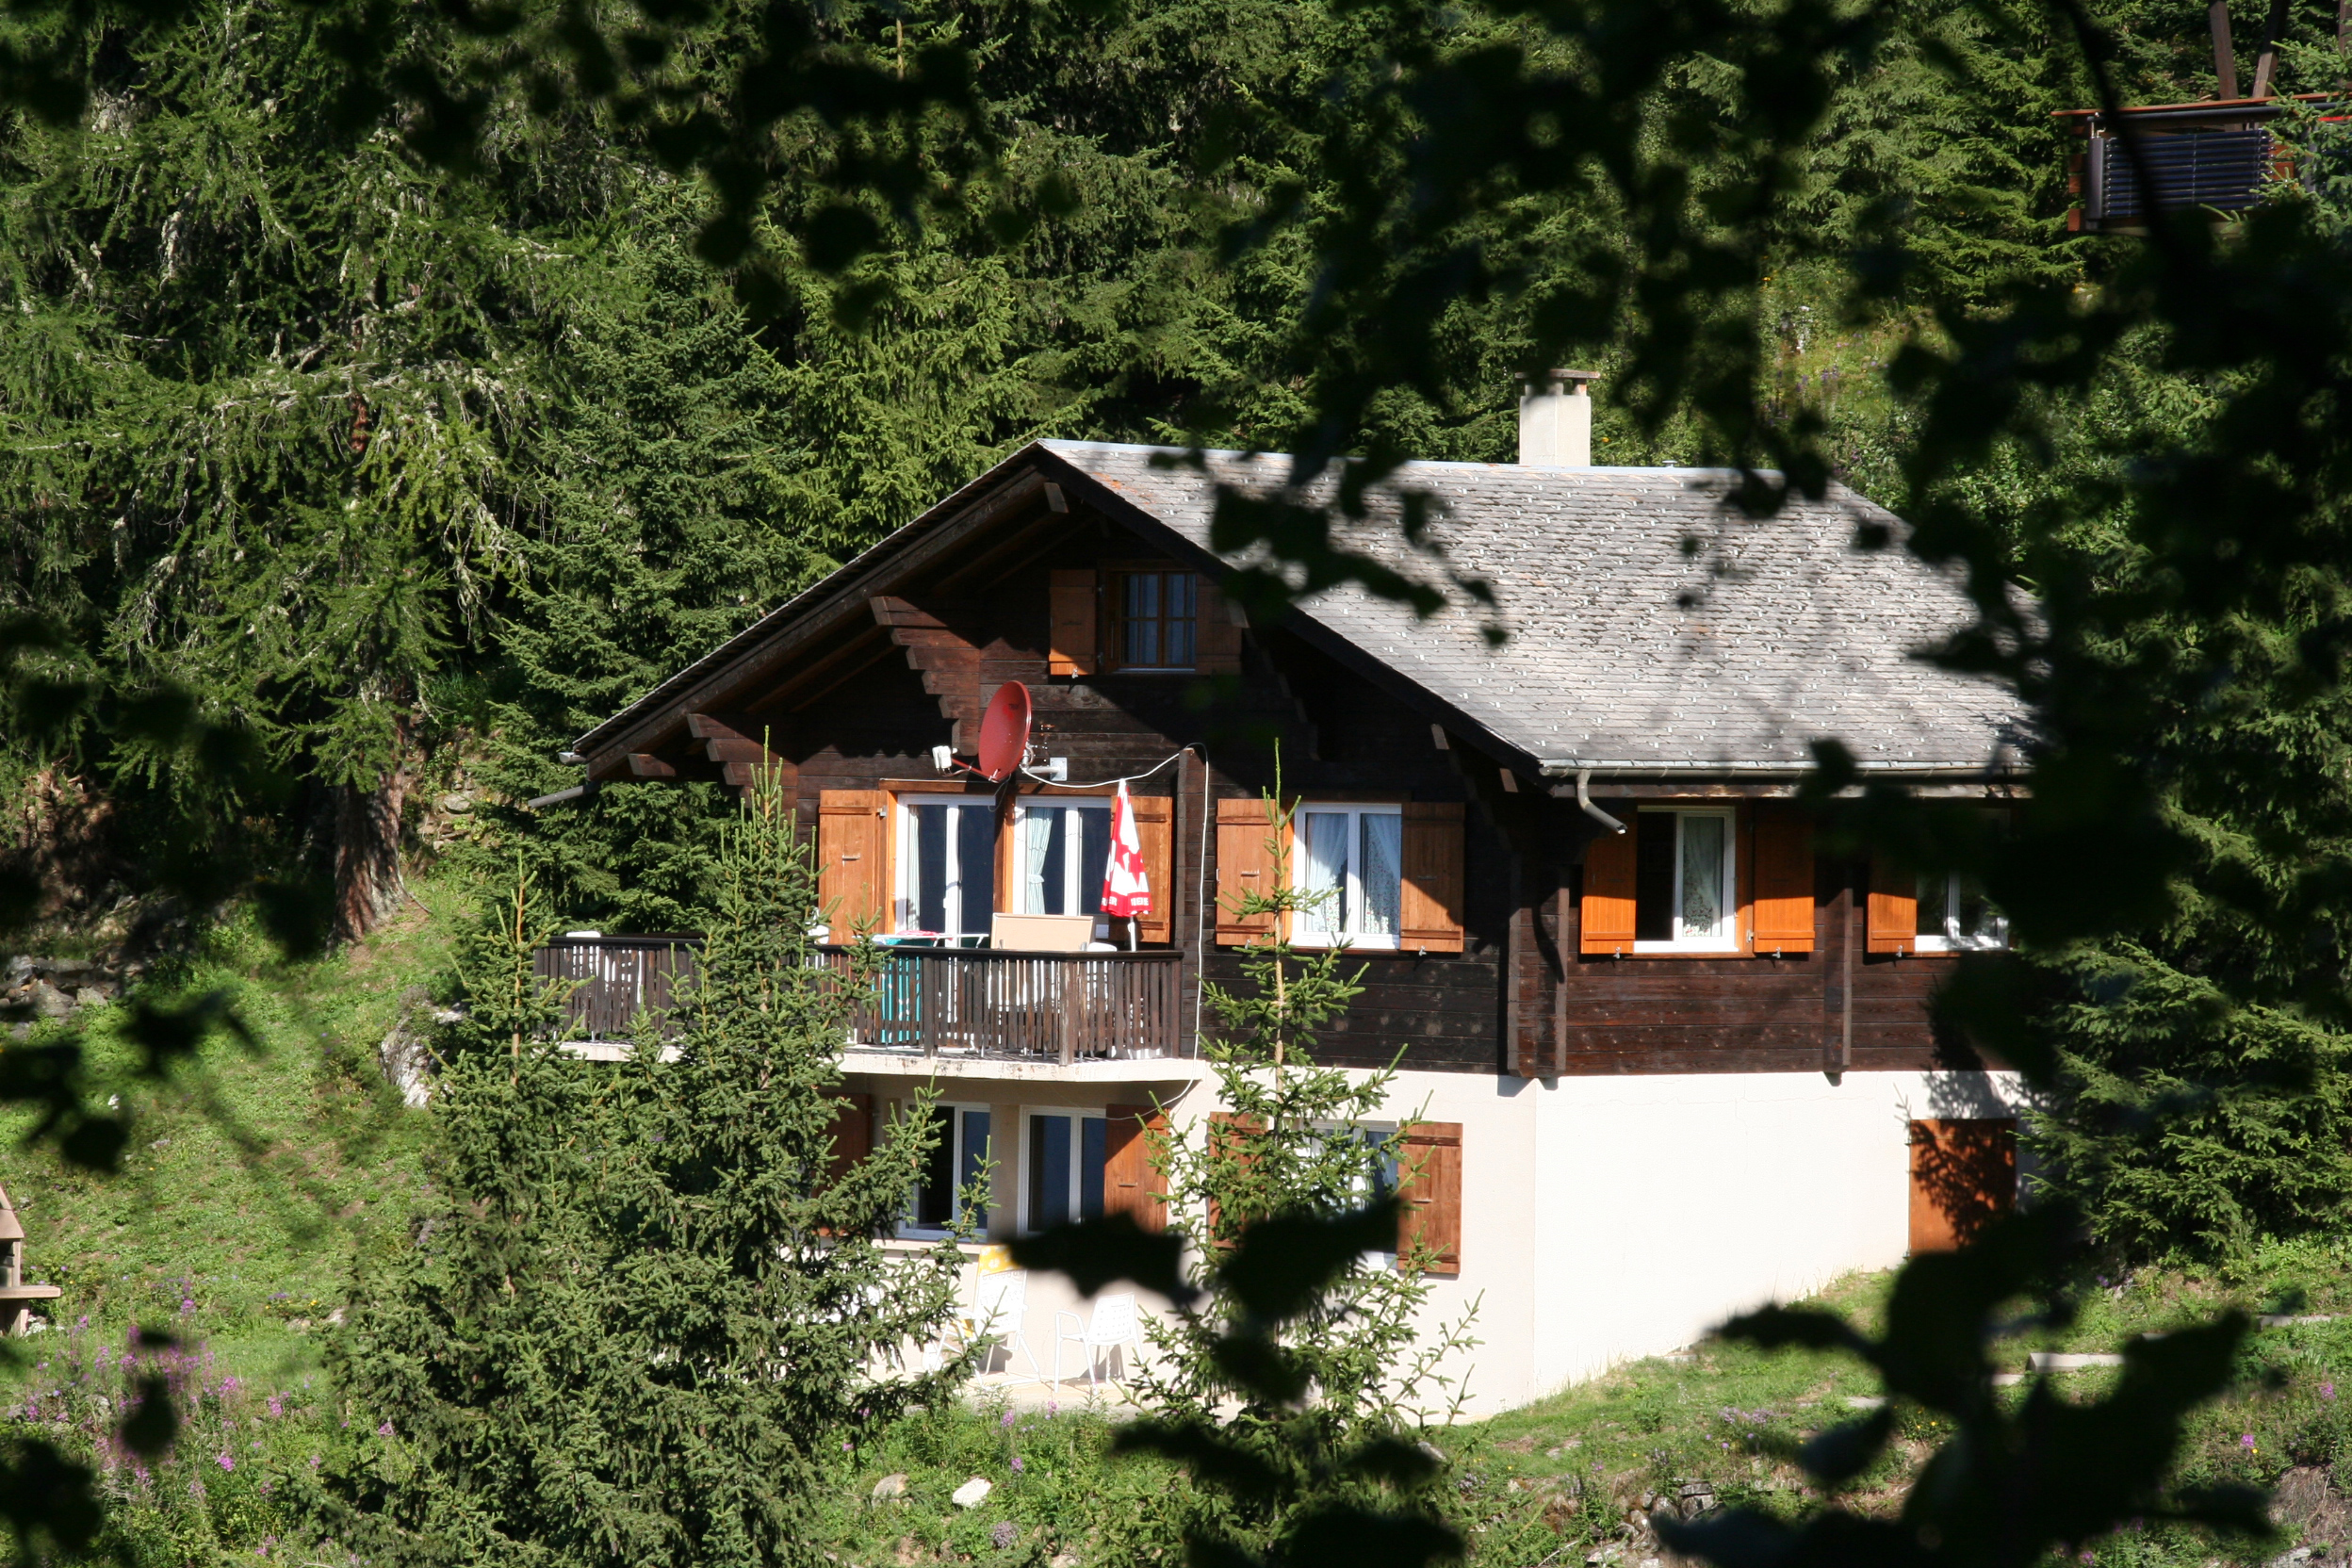 chalets-IMG_4736_1